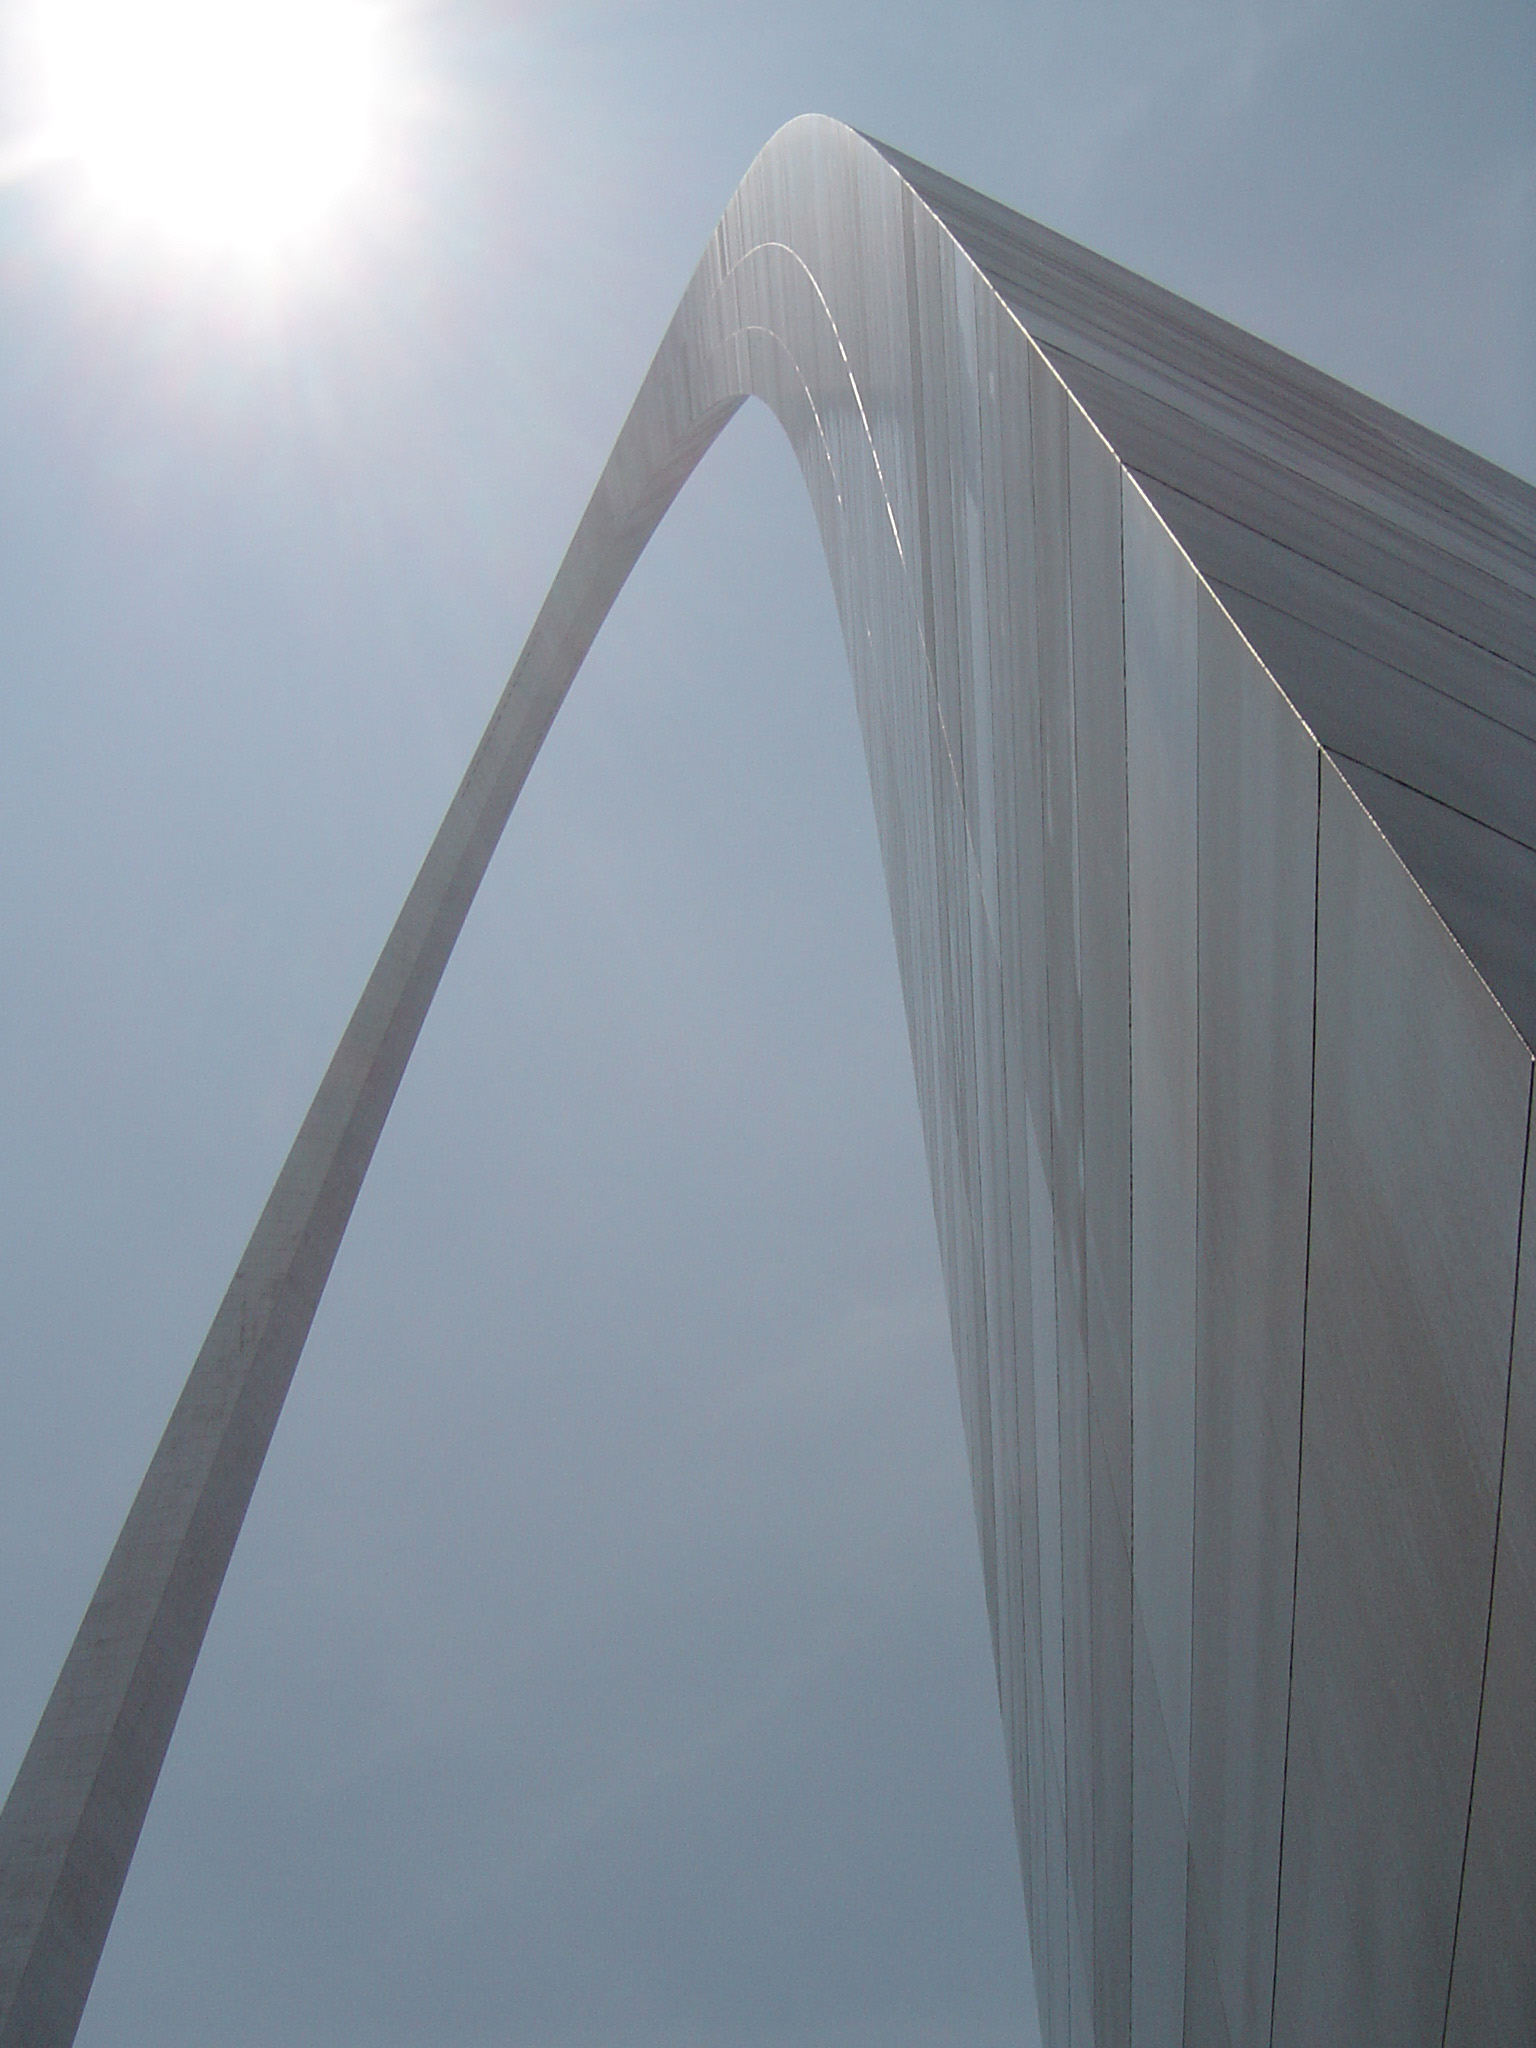 View looking up the curve of the Gateway Arch, St Louis, USA against a blue sky with sunburst